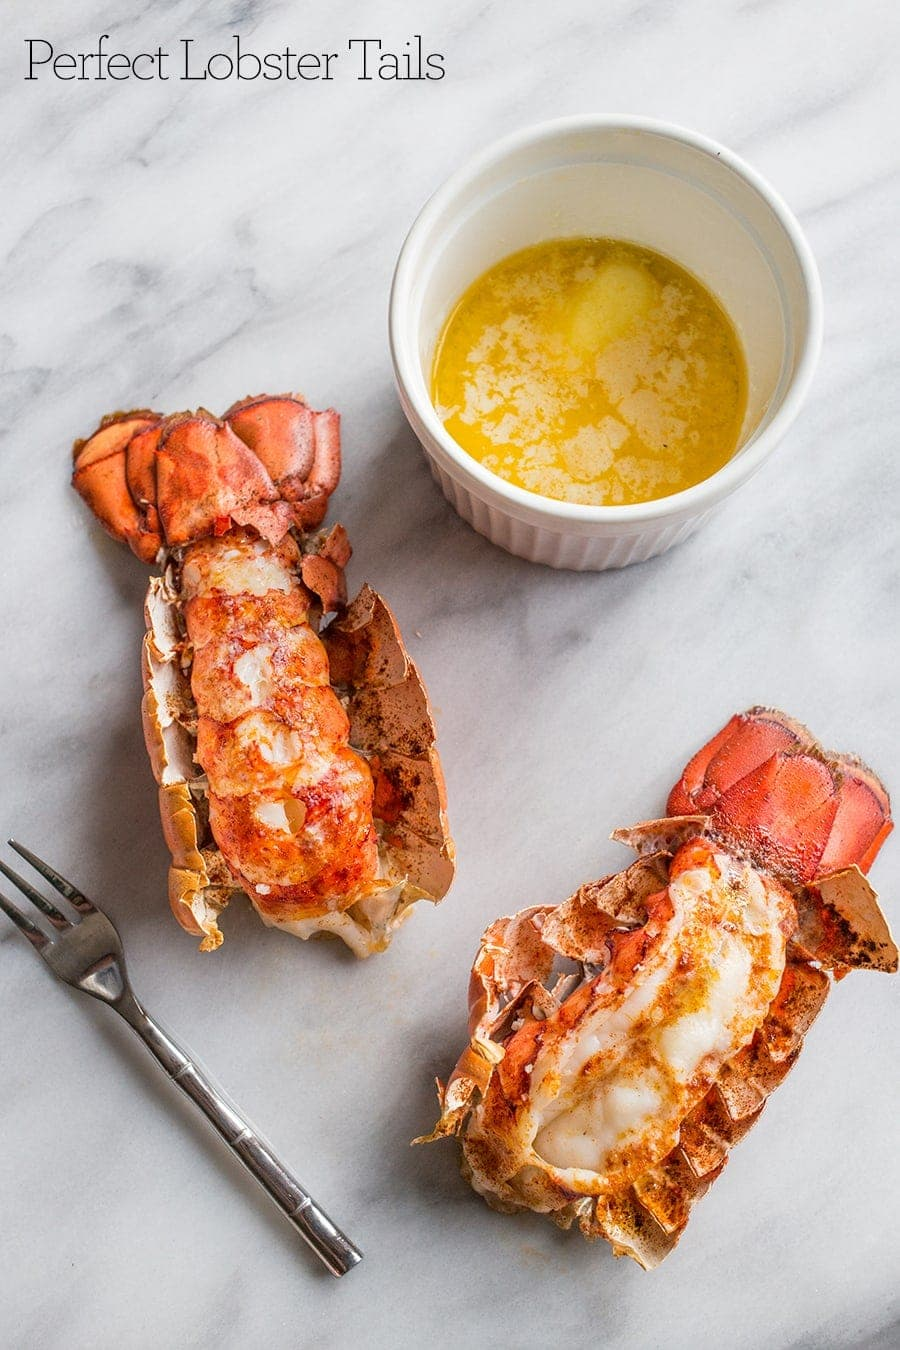 Lobster tails on a table with melted butter